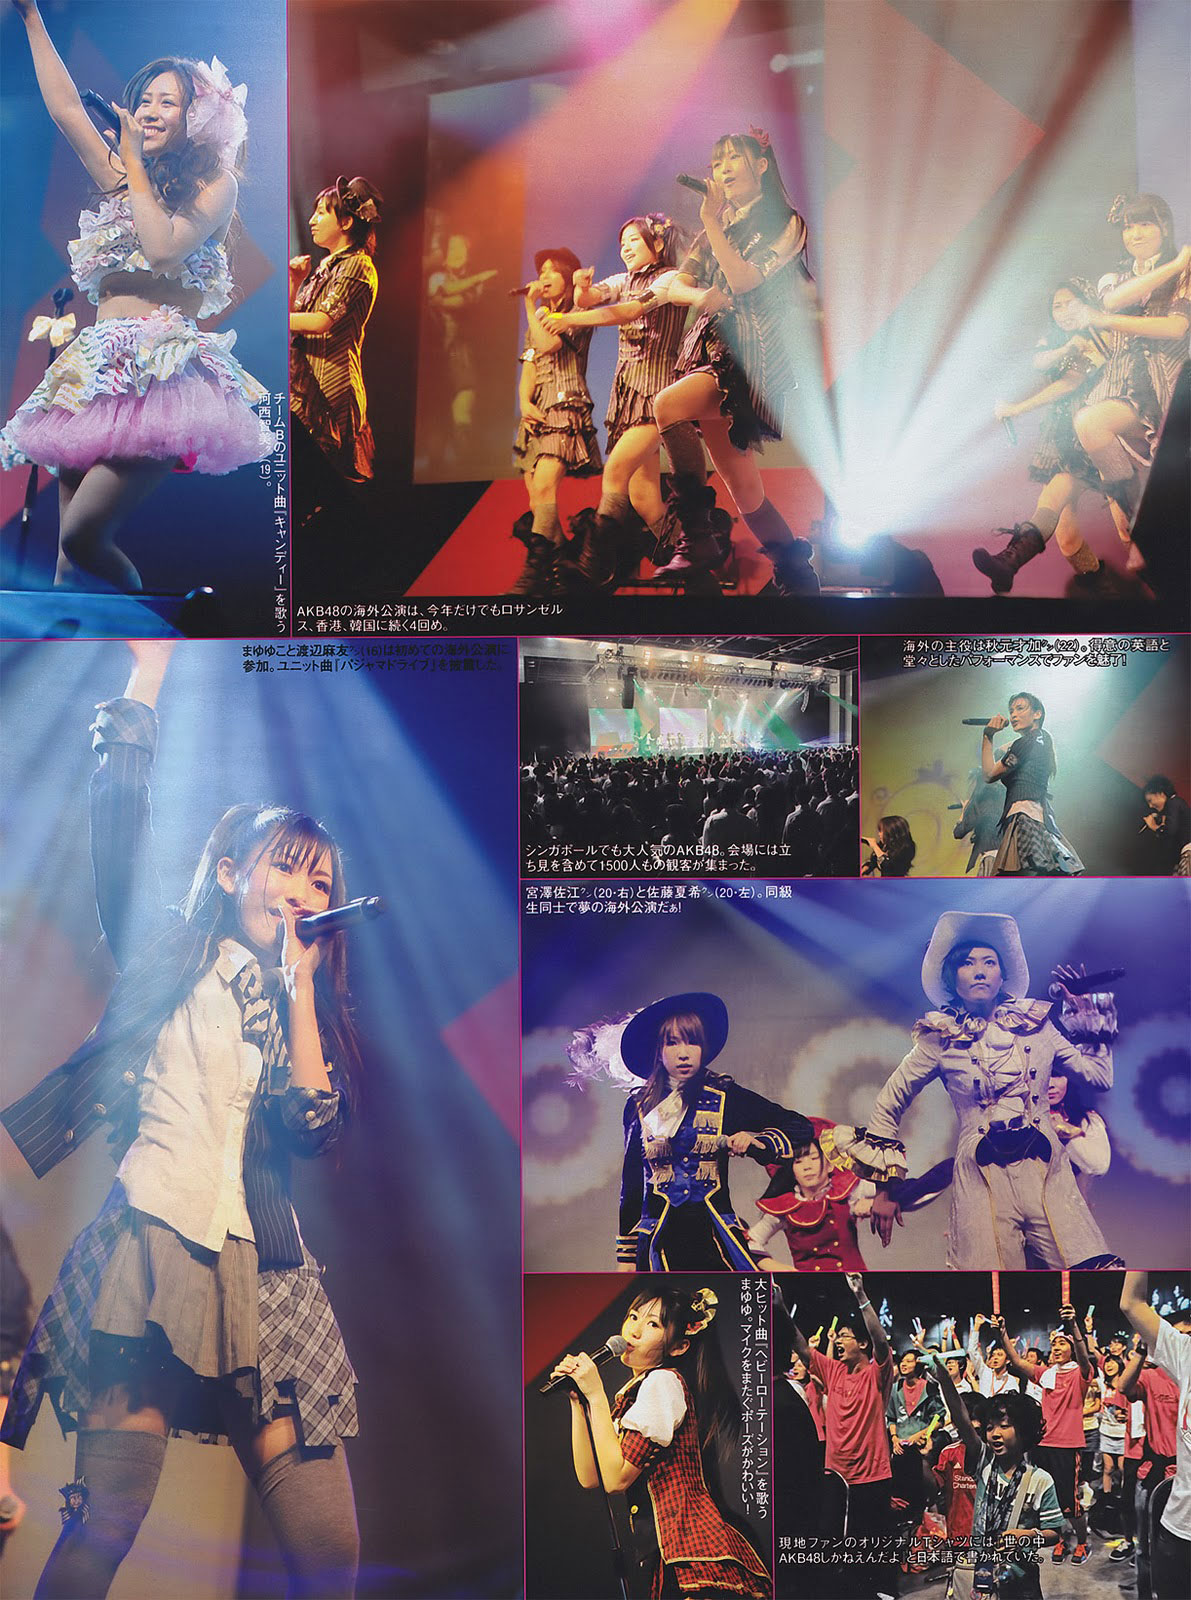 AKB48 in Singapore concert